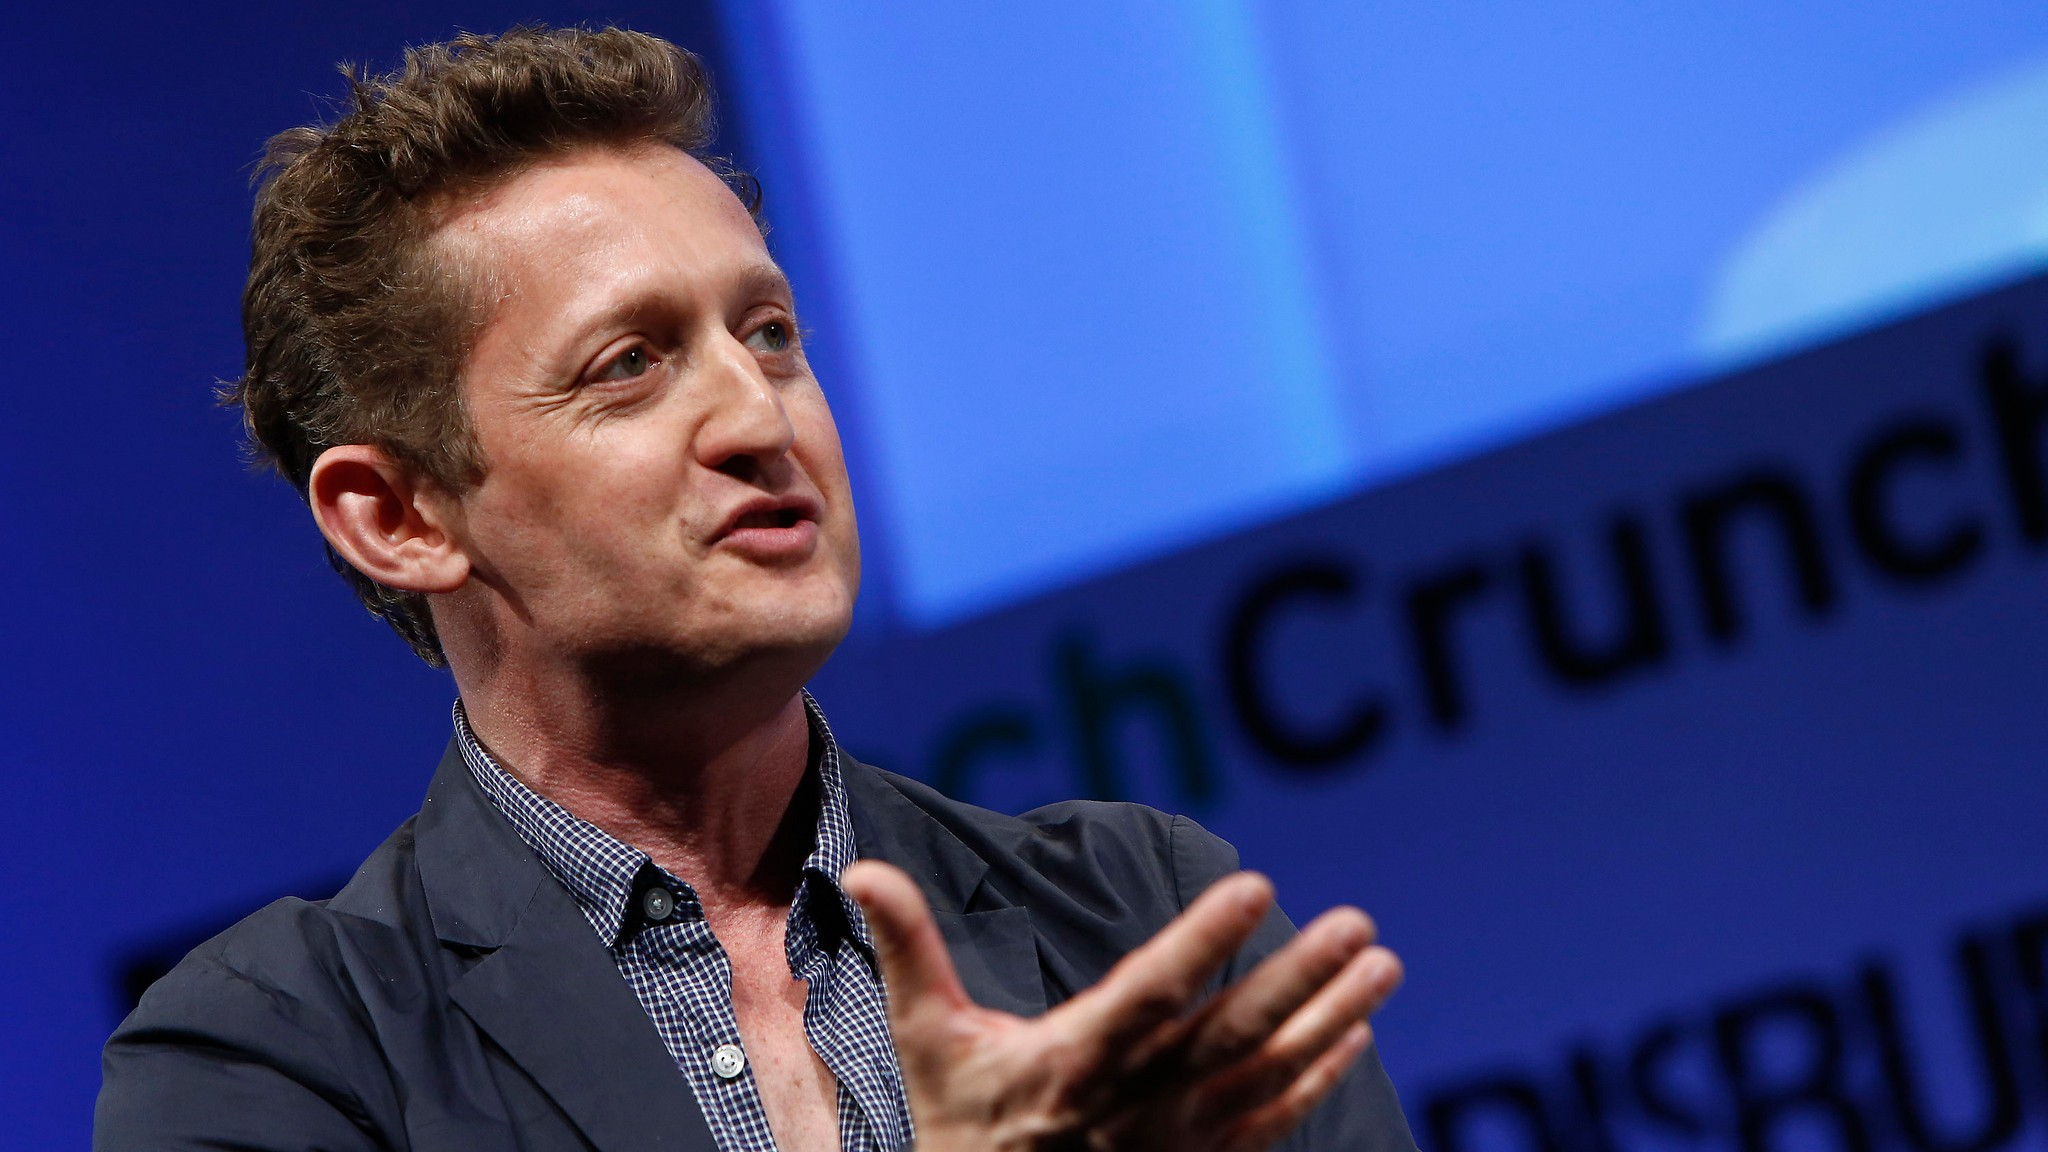 'Deep Web' Director Alex Winter on Silk Road Boss's Harsh Sentence: 'A Stunner'